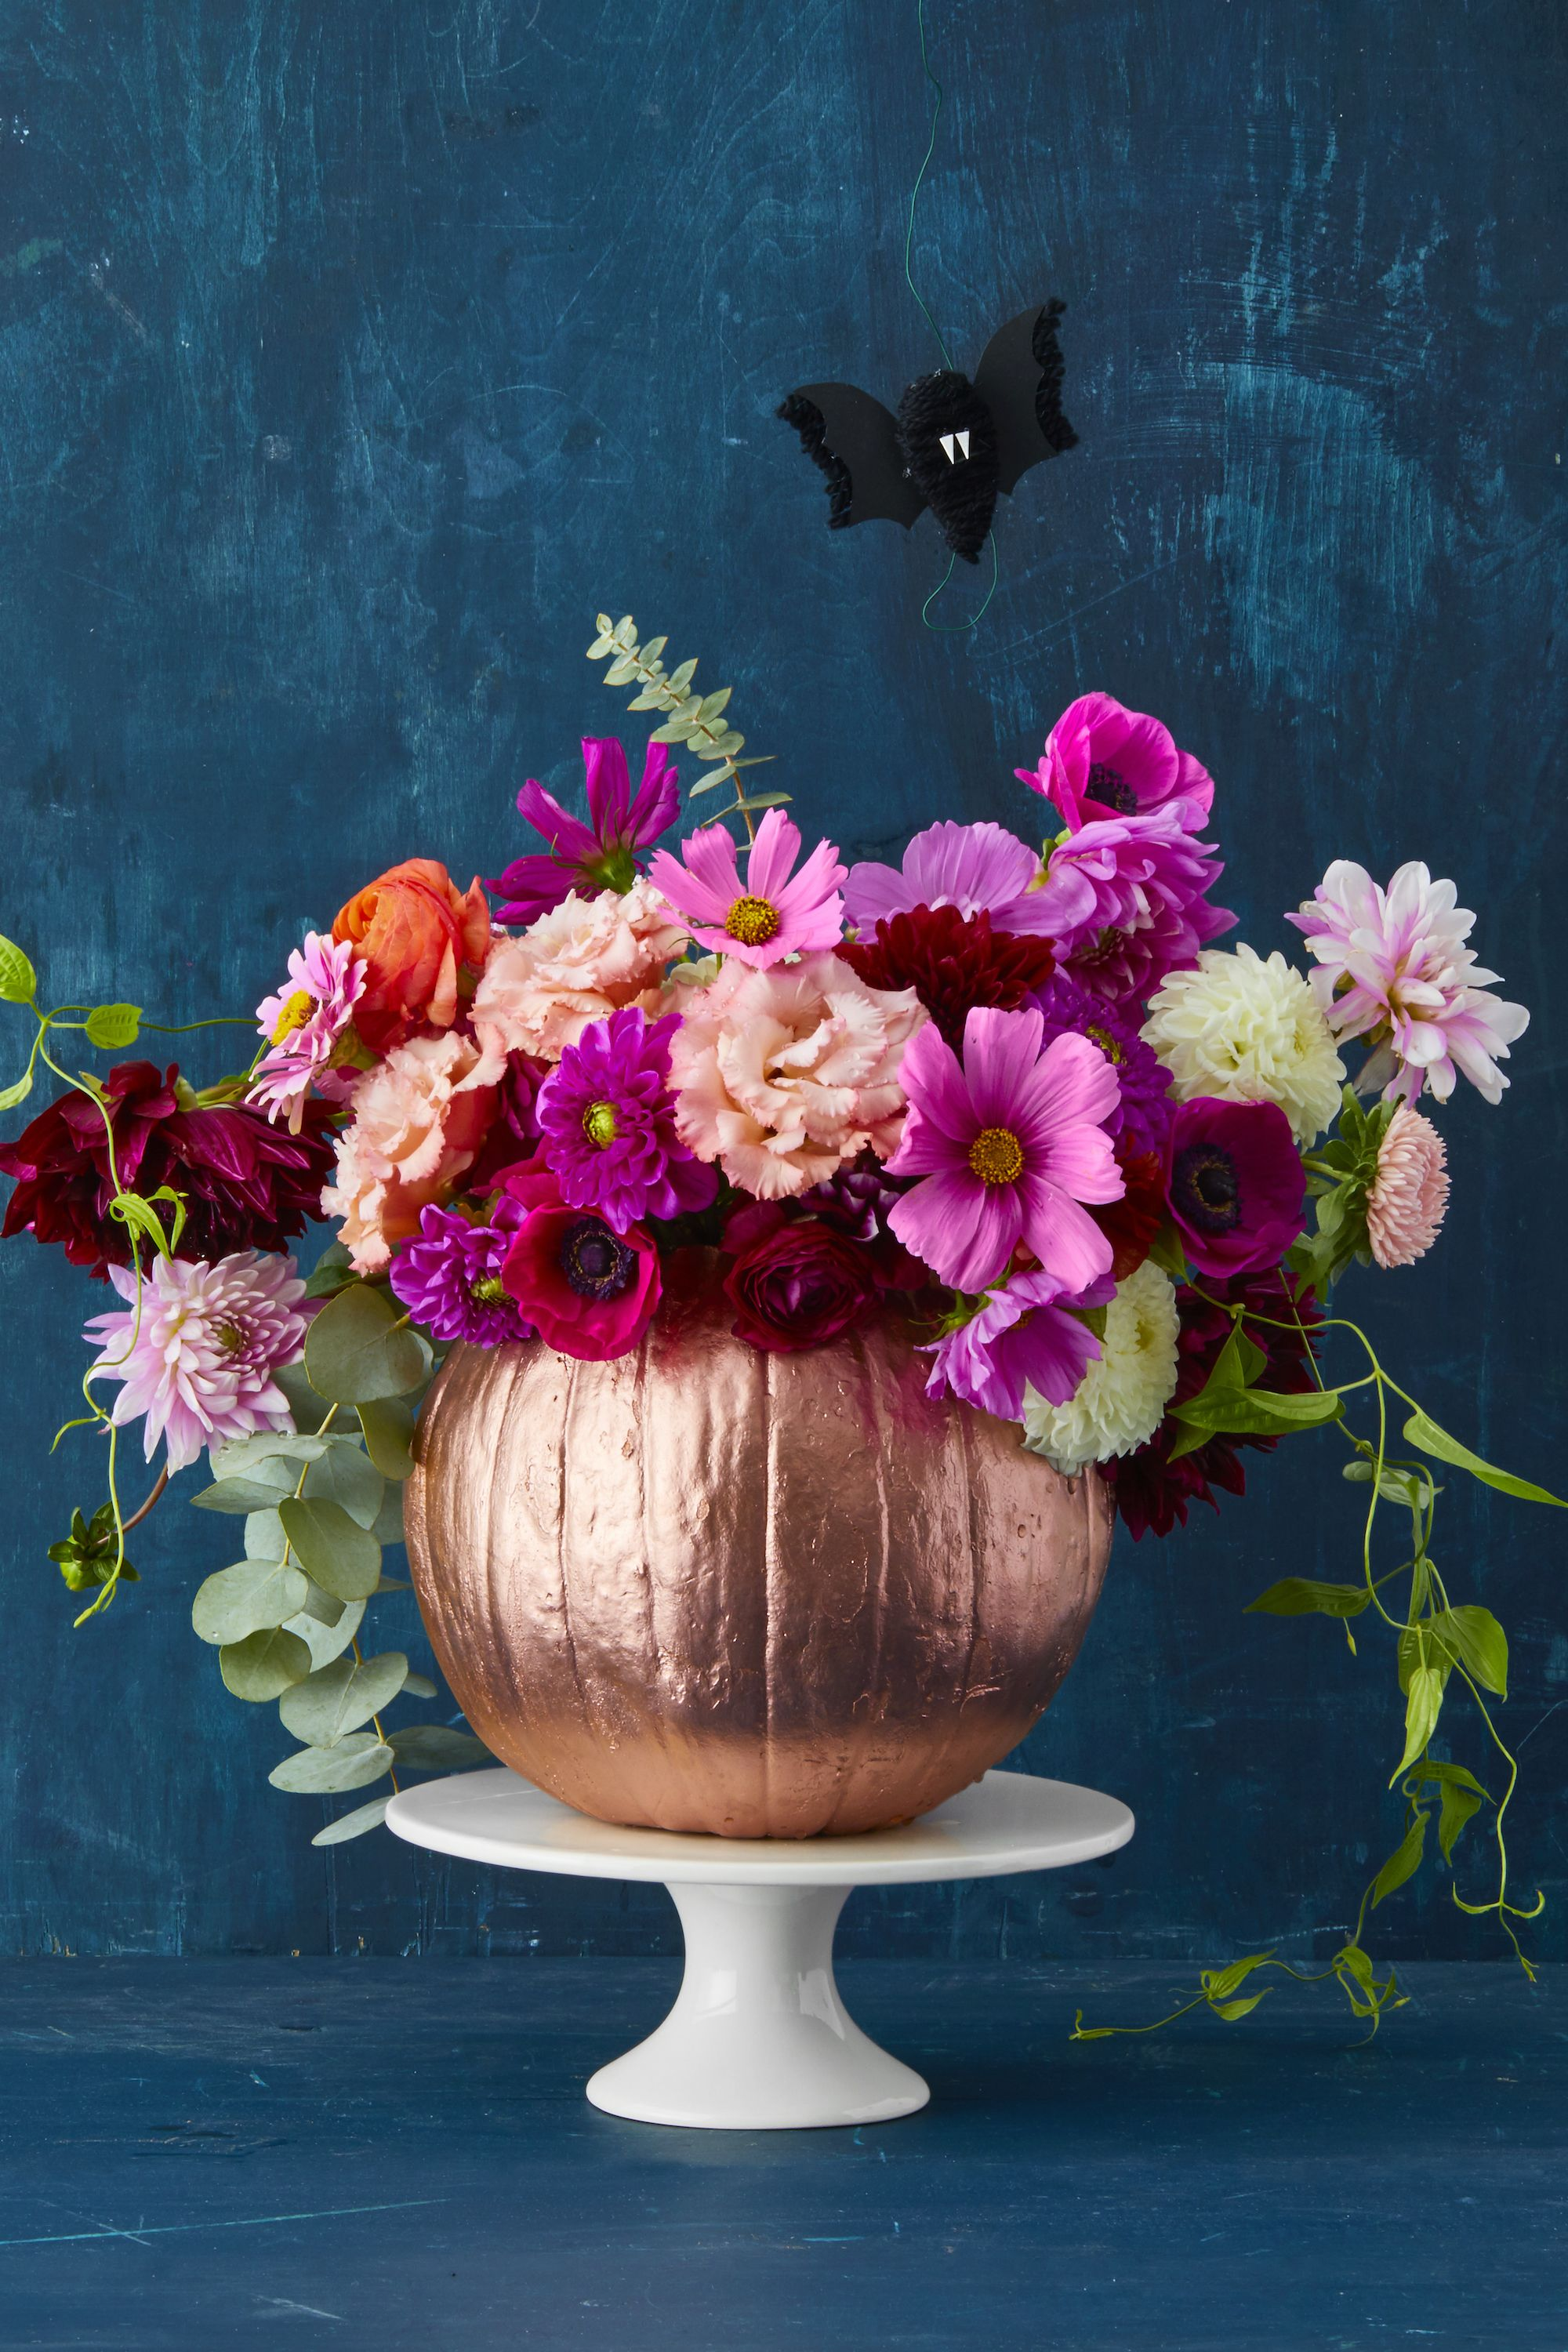 halloween pumpkin vase with flowers